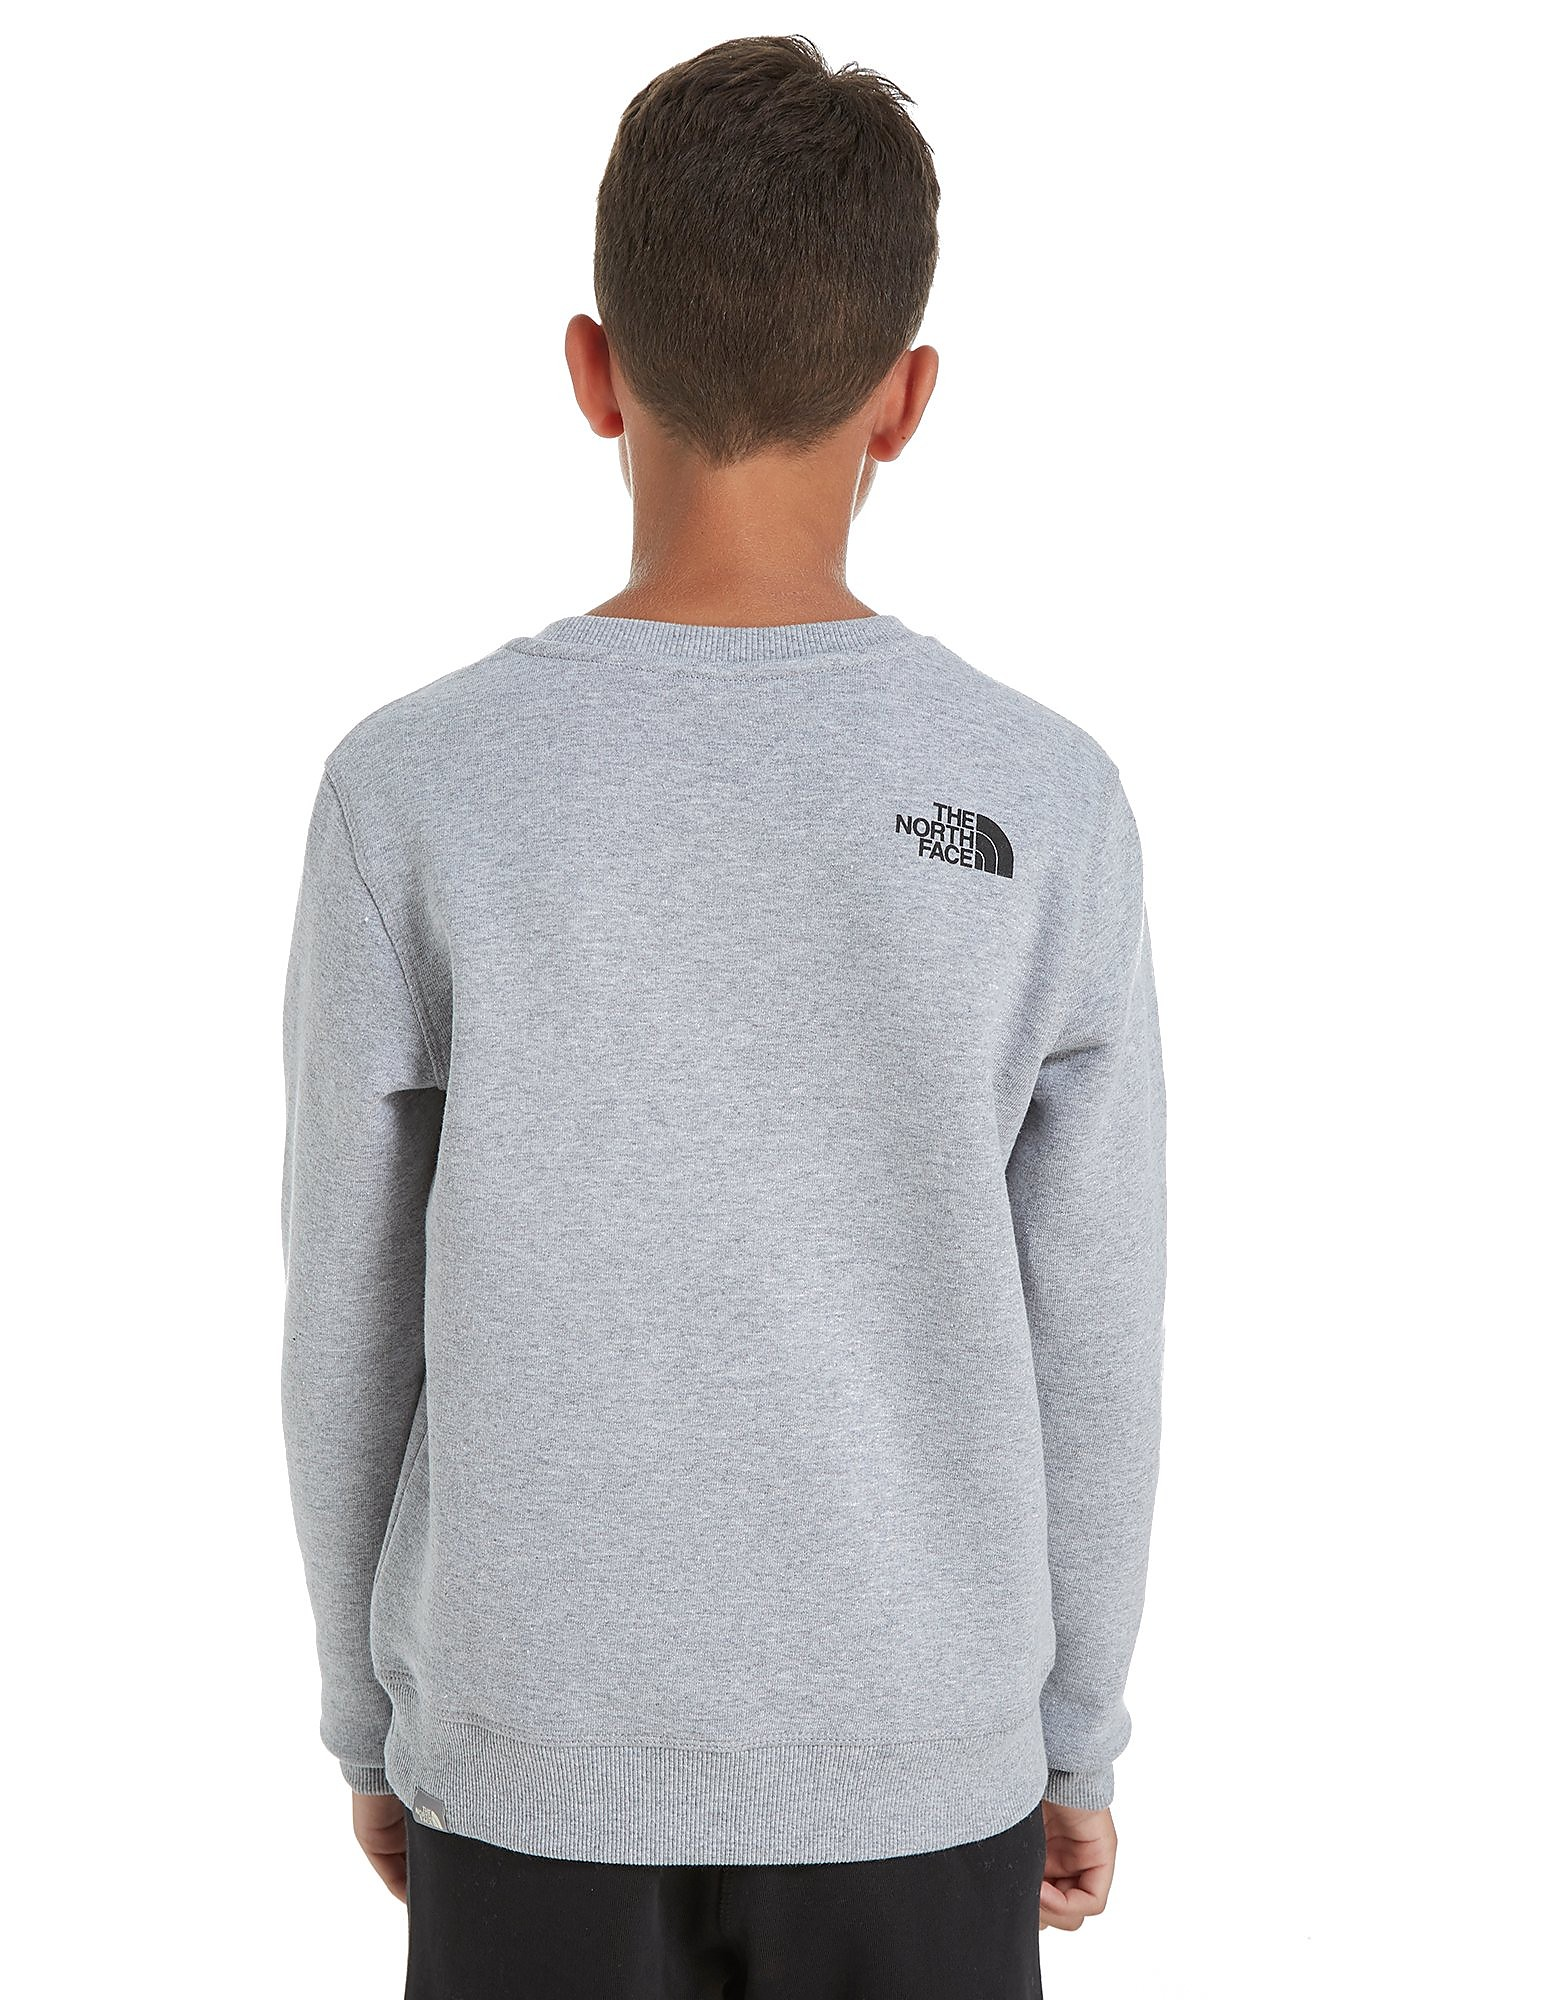 The North Face Boy's Box Crew Sweatshirt Junior